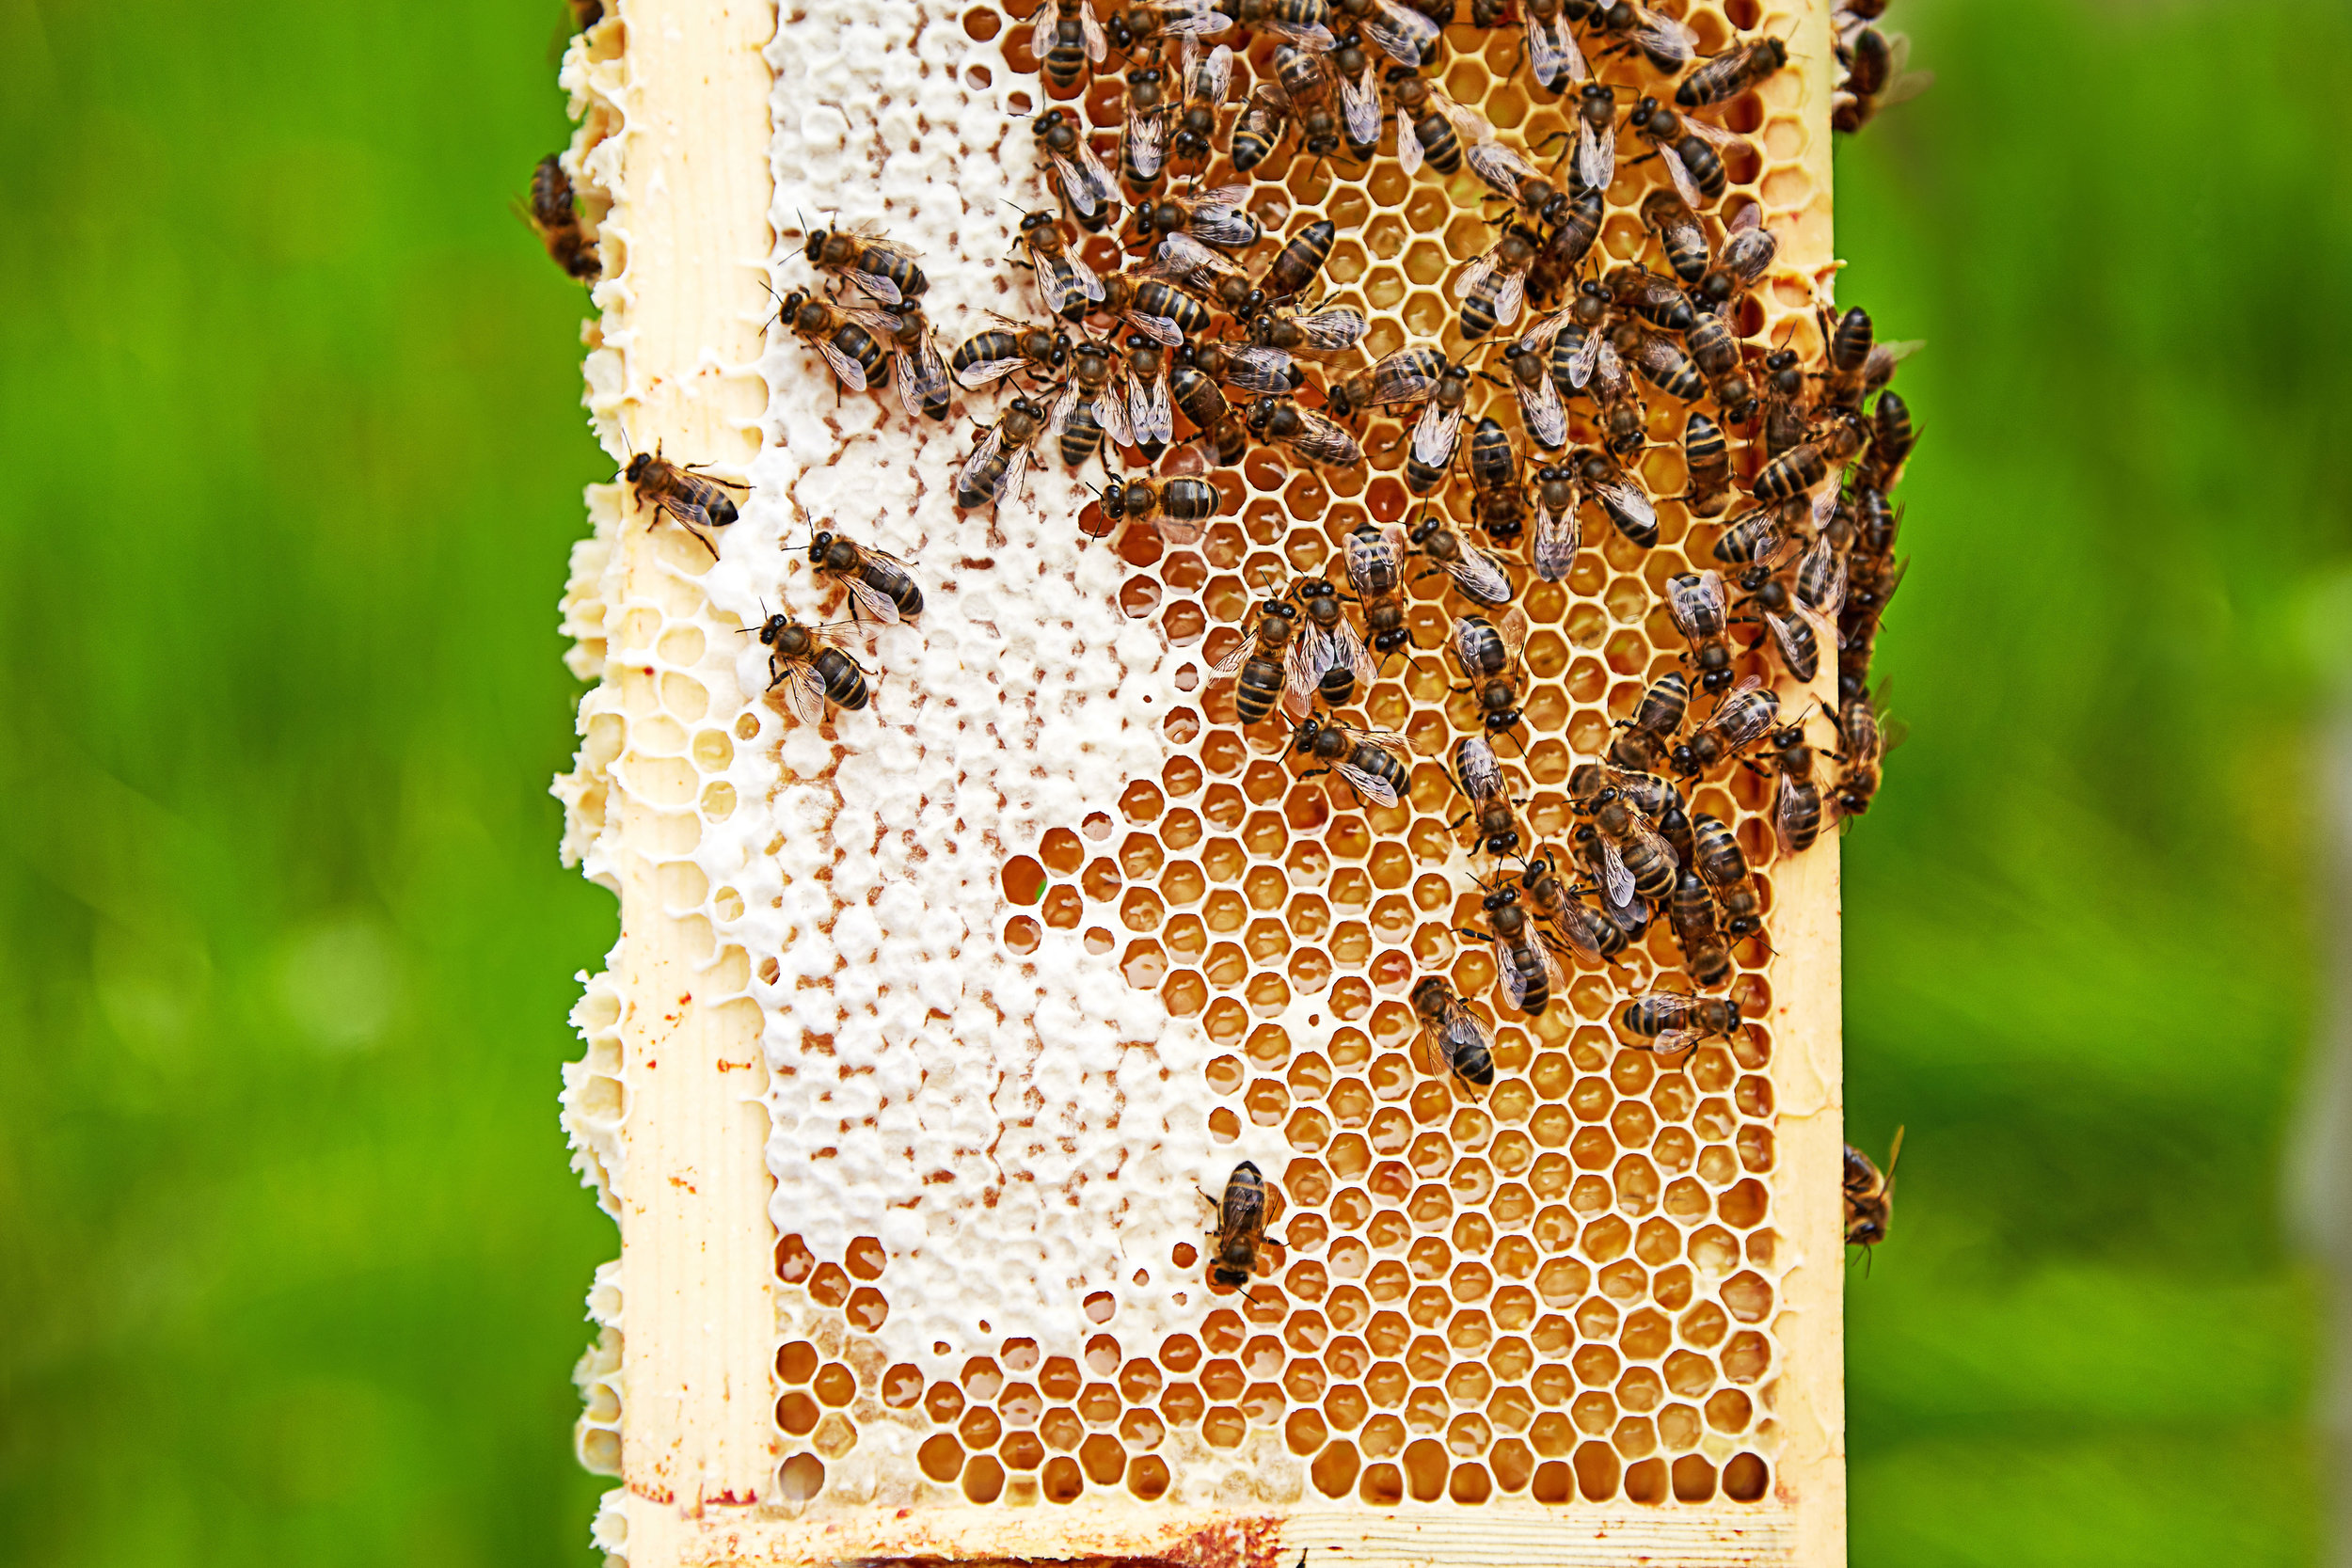 Bees-and-honeycomb-frame.jpg